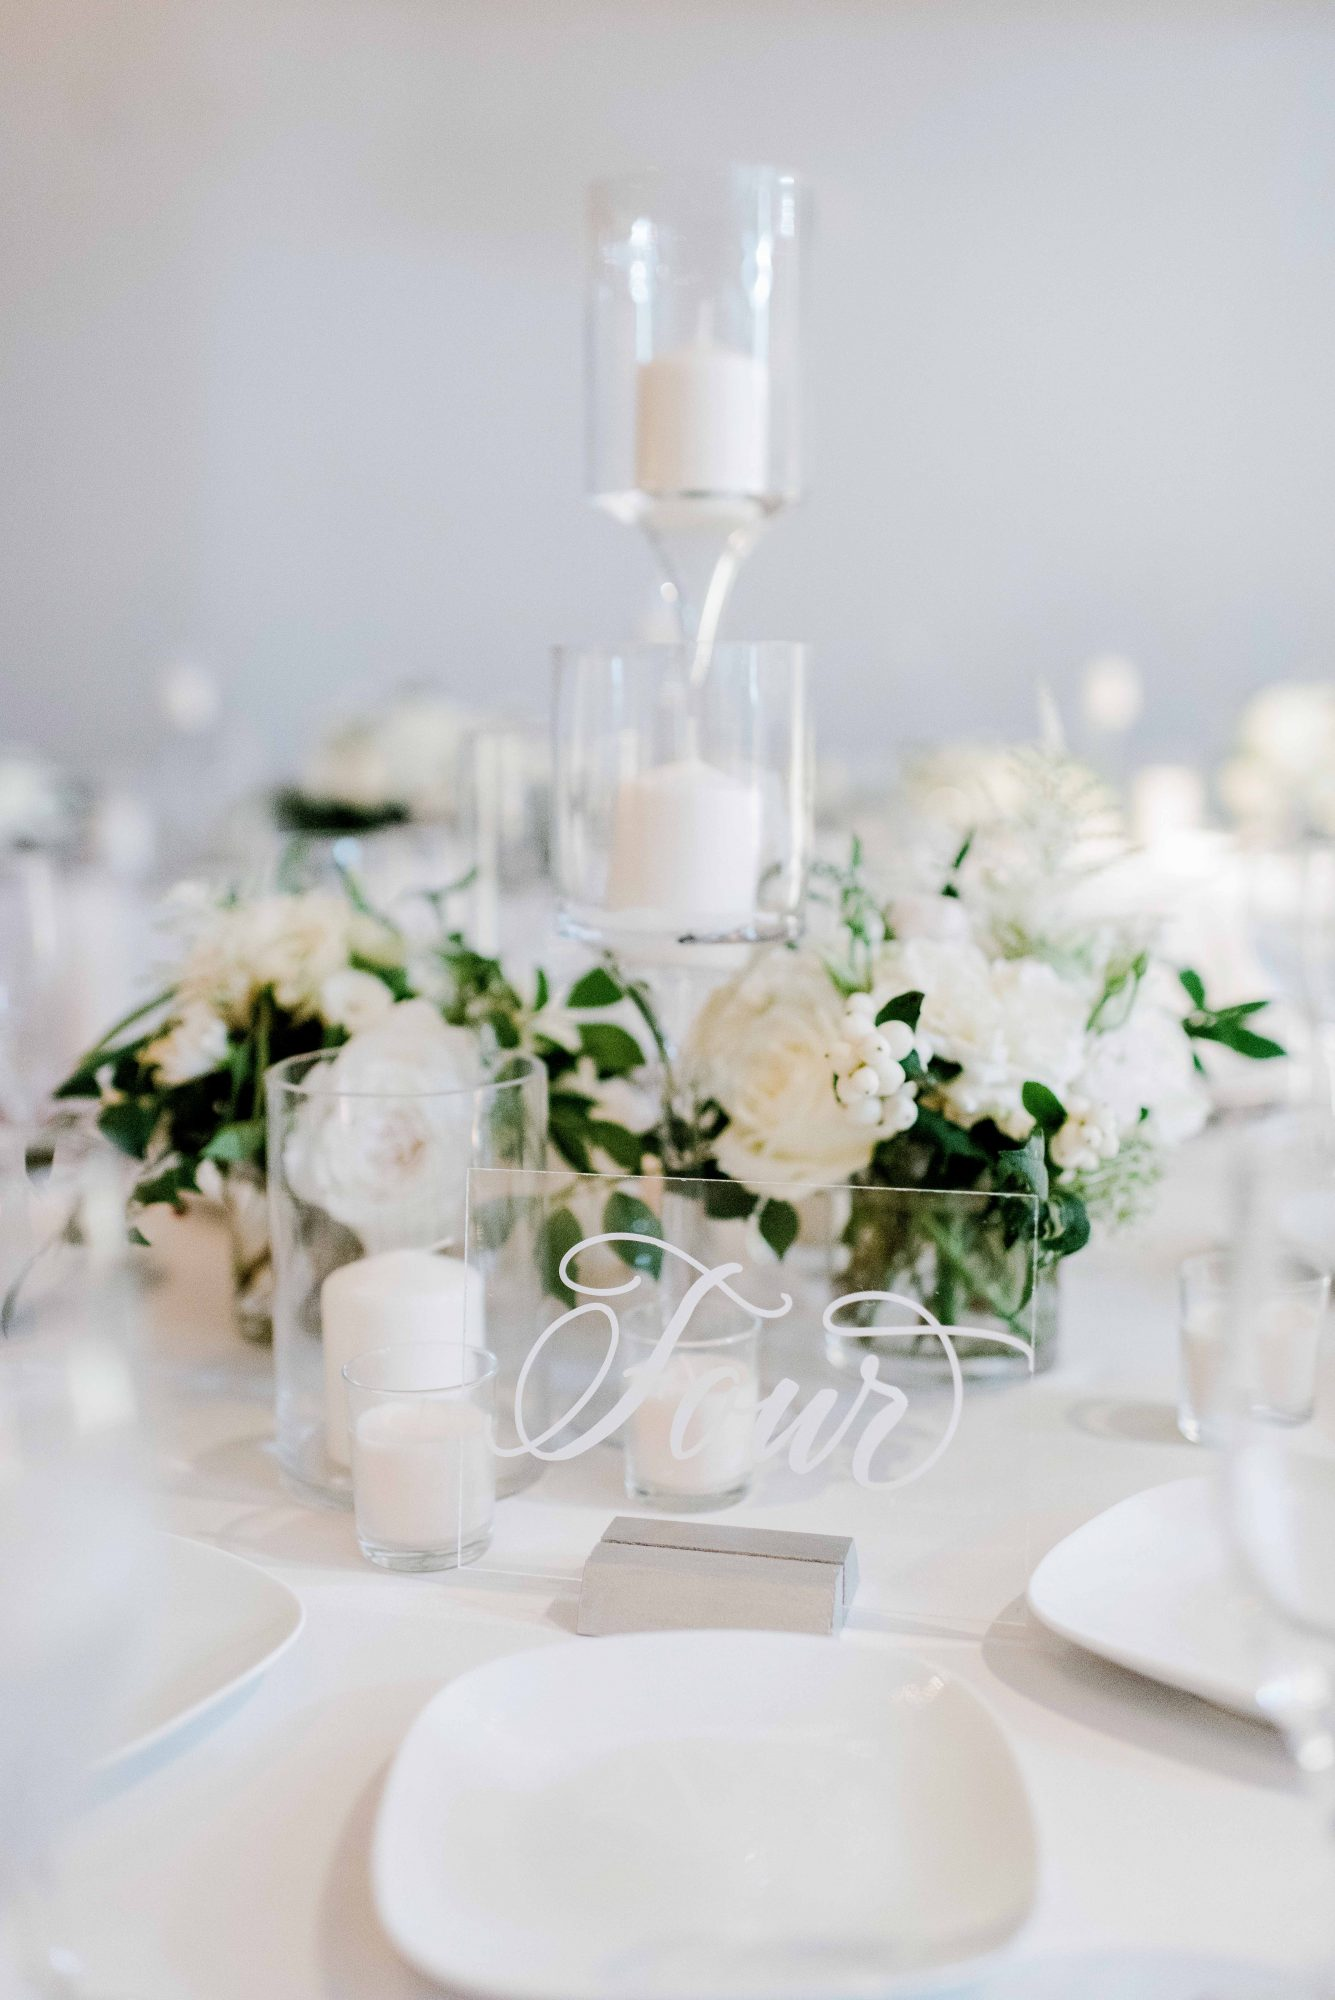 winter wedding centerpieces rachel pearlman photography